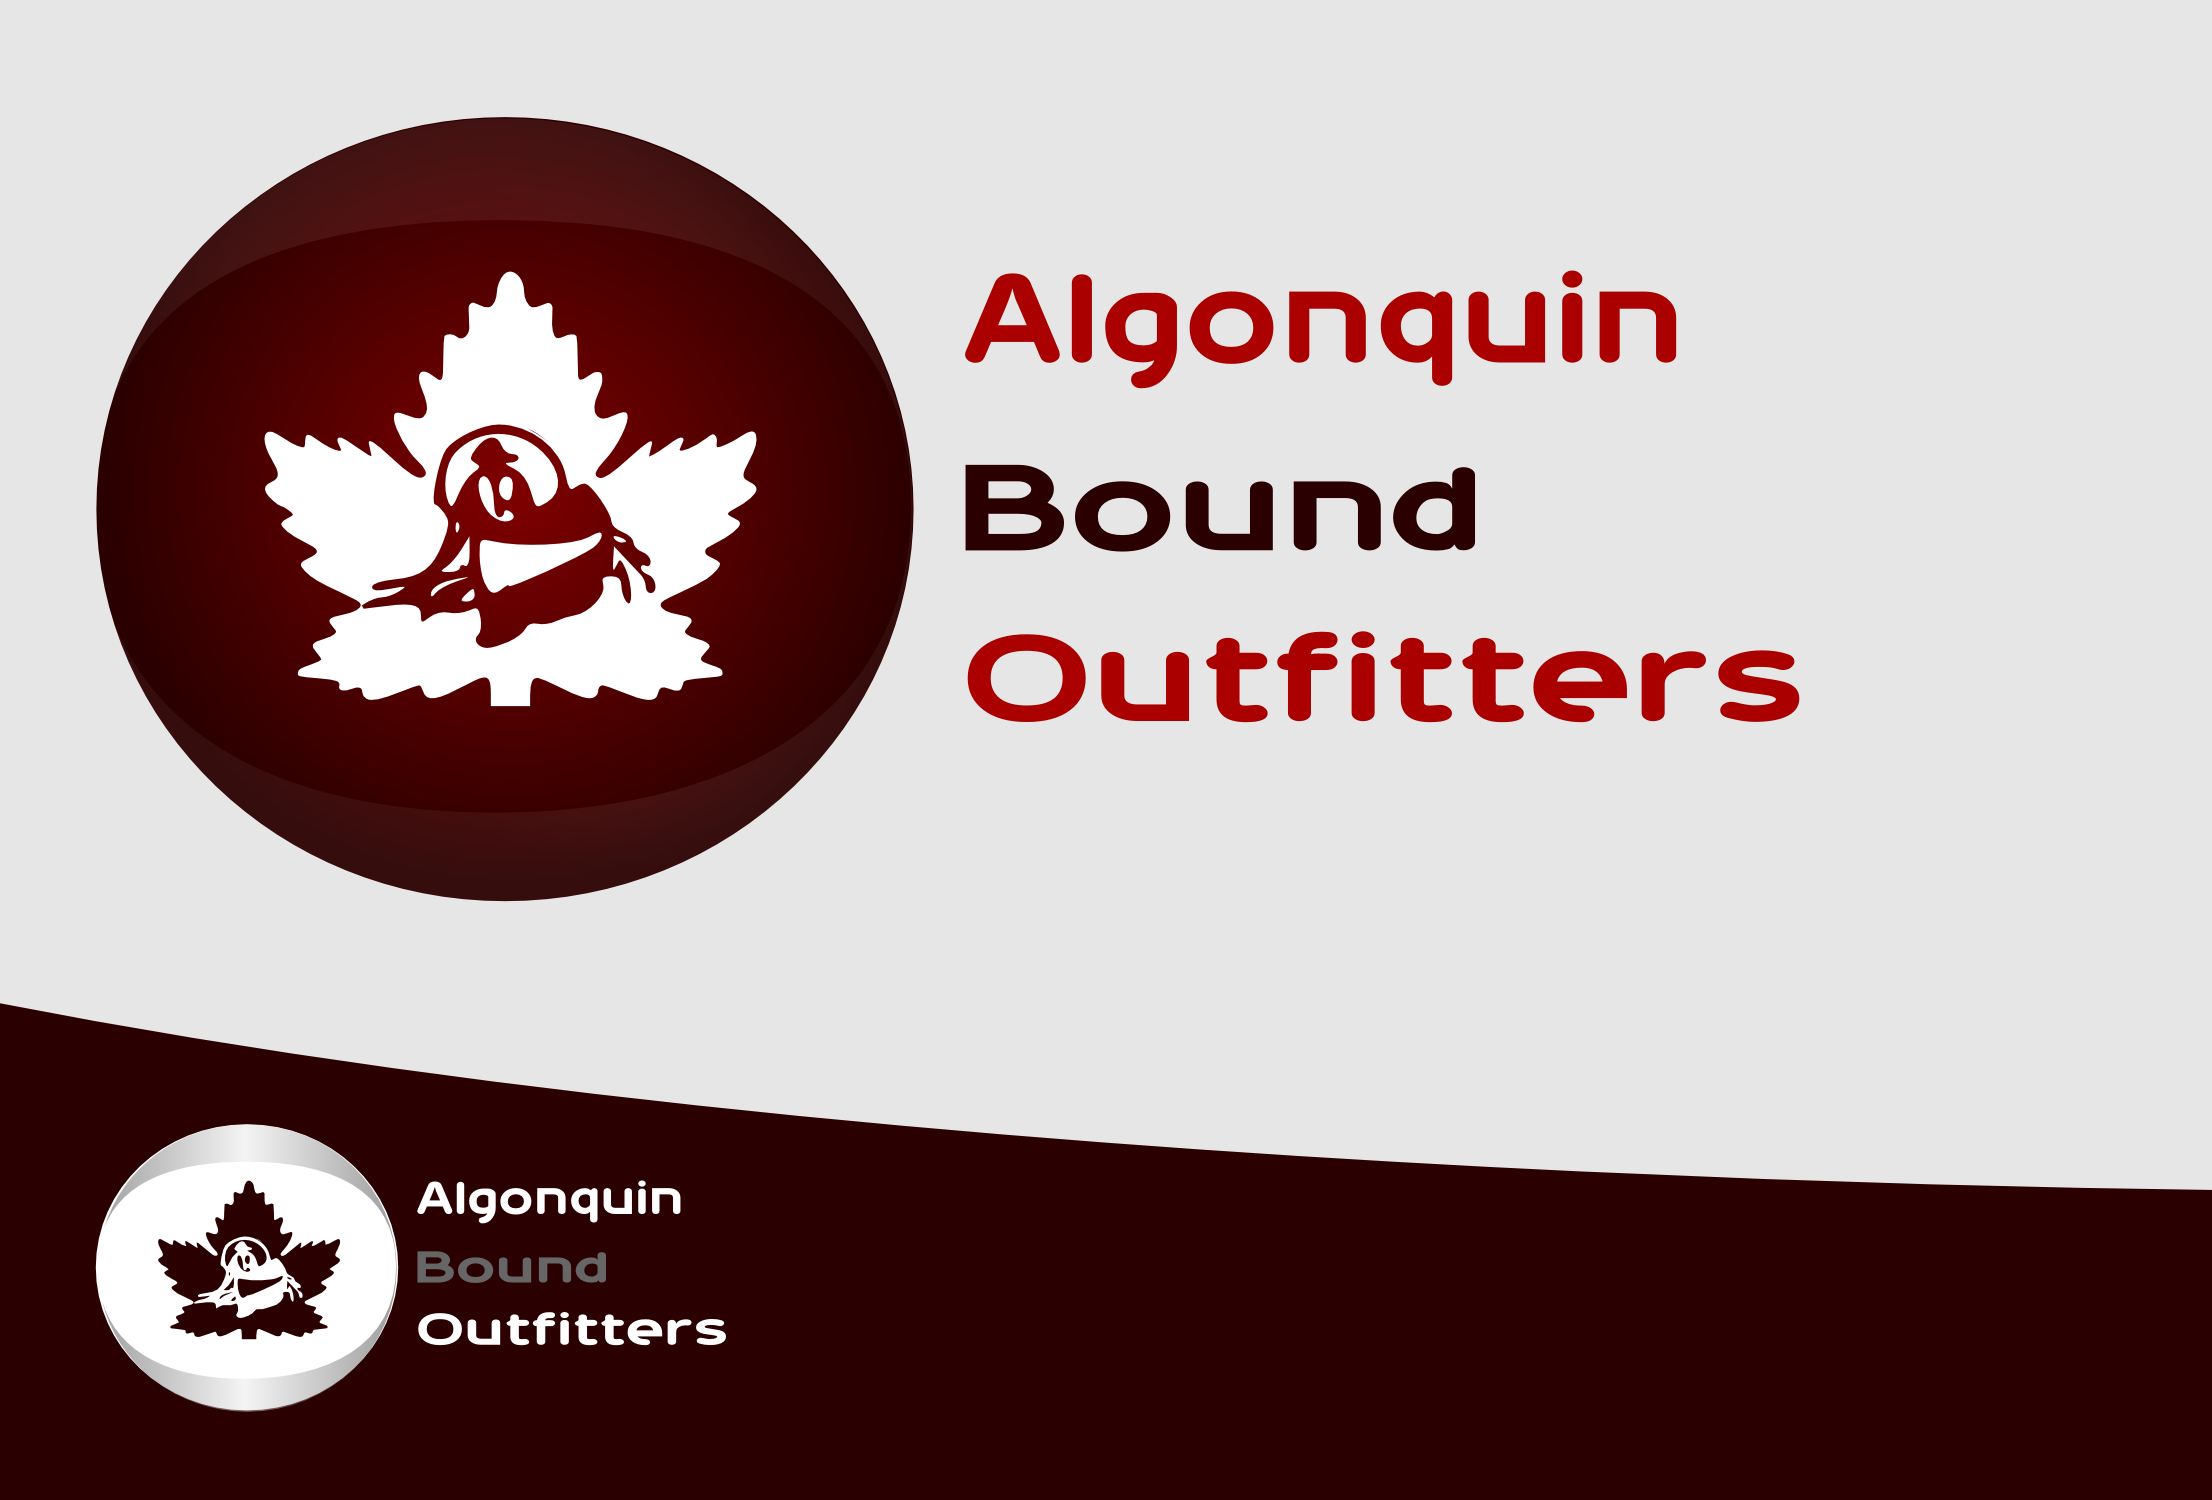 Logo Design by Arindam Khanda - Entry No. 14 in the Logo Design Contest Captivating Logo Design for Algonquin Bound Outfitters.